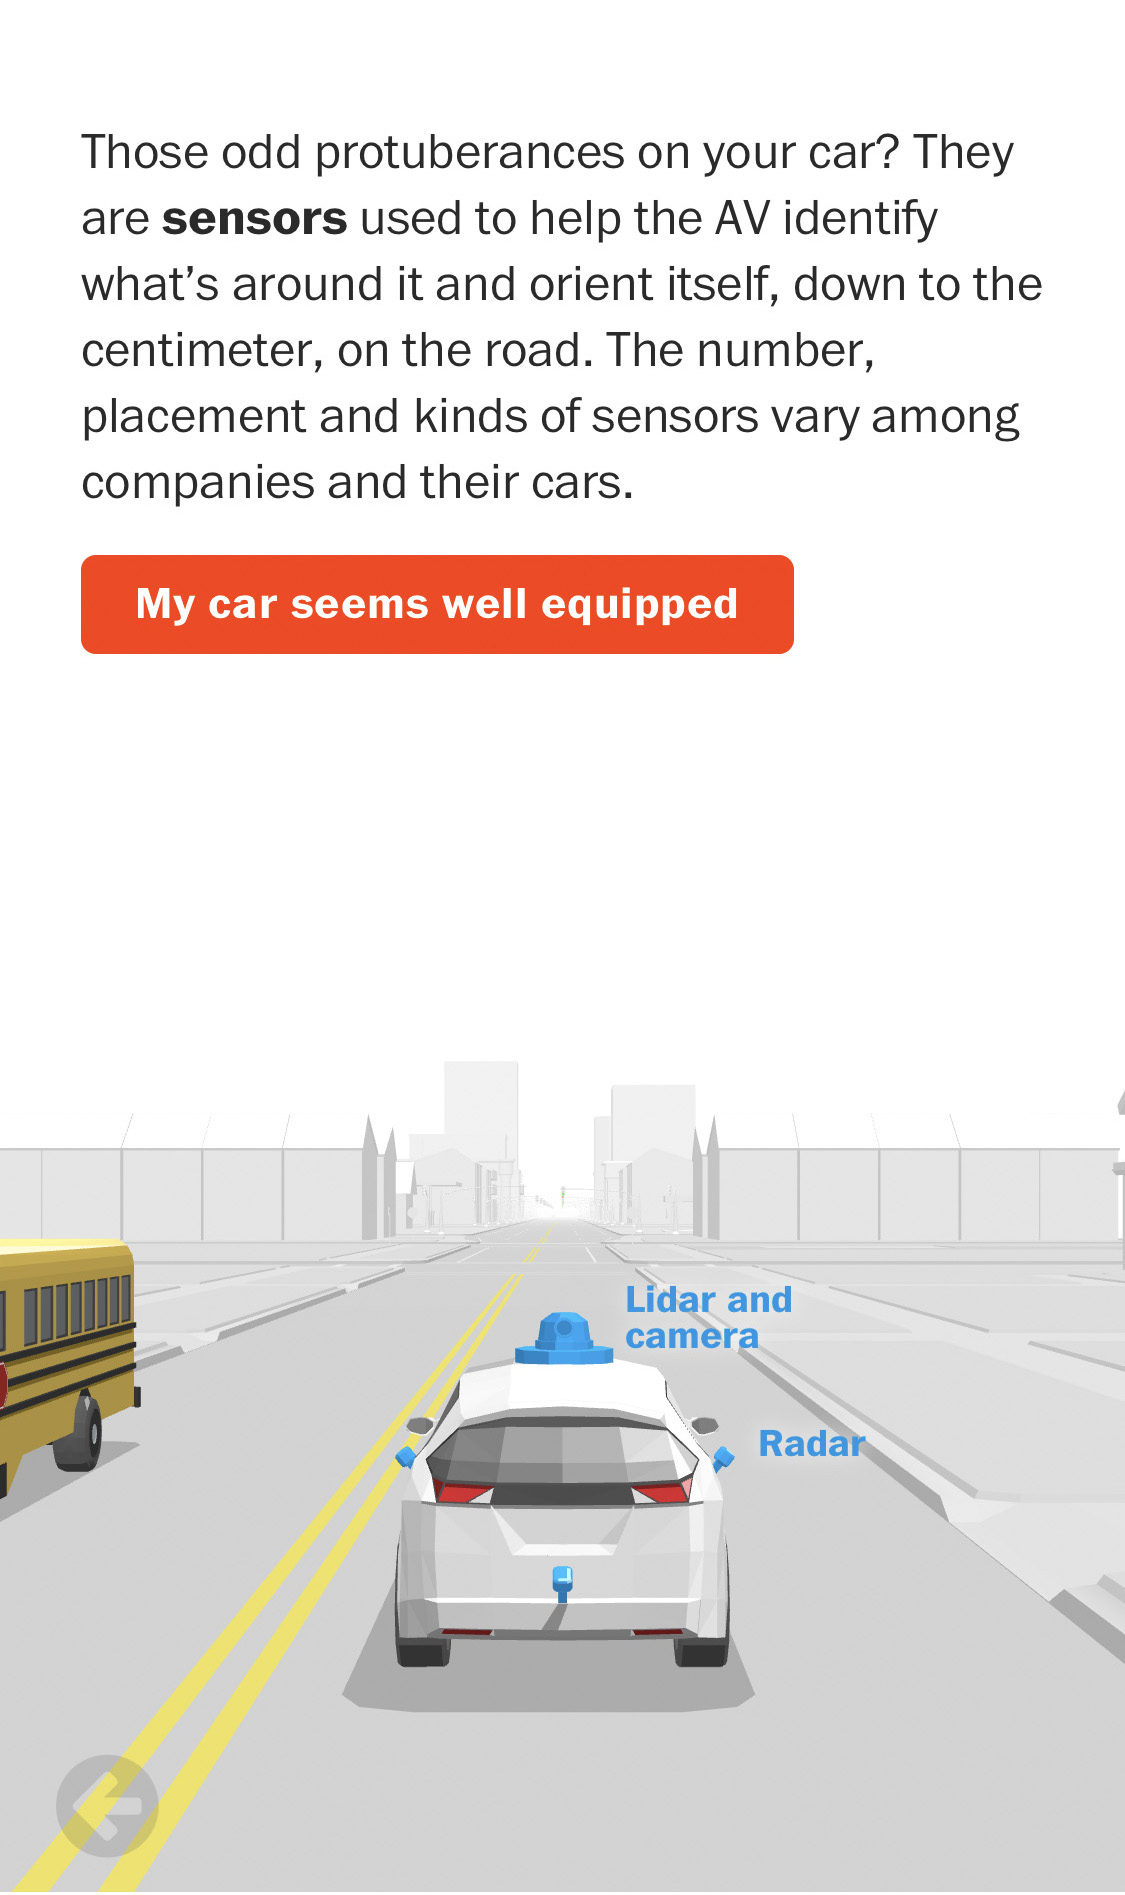 Learn about self-driving cars and its impact on the roads